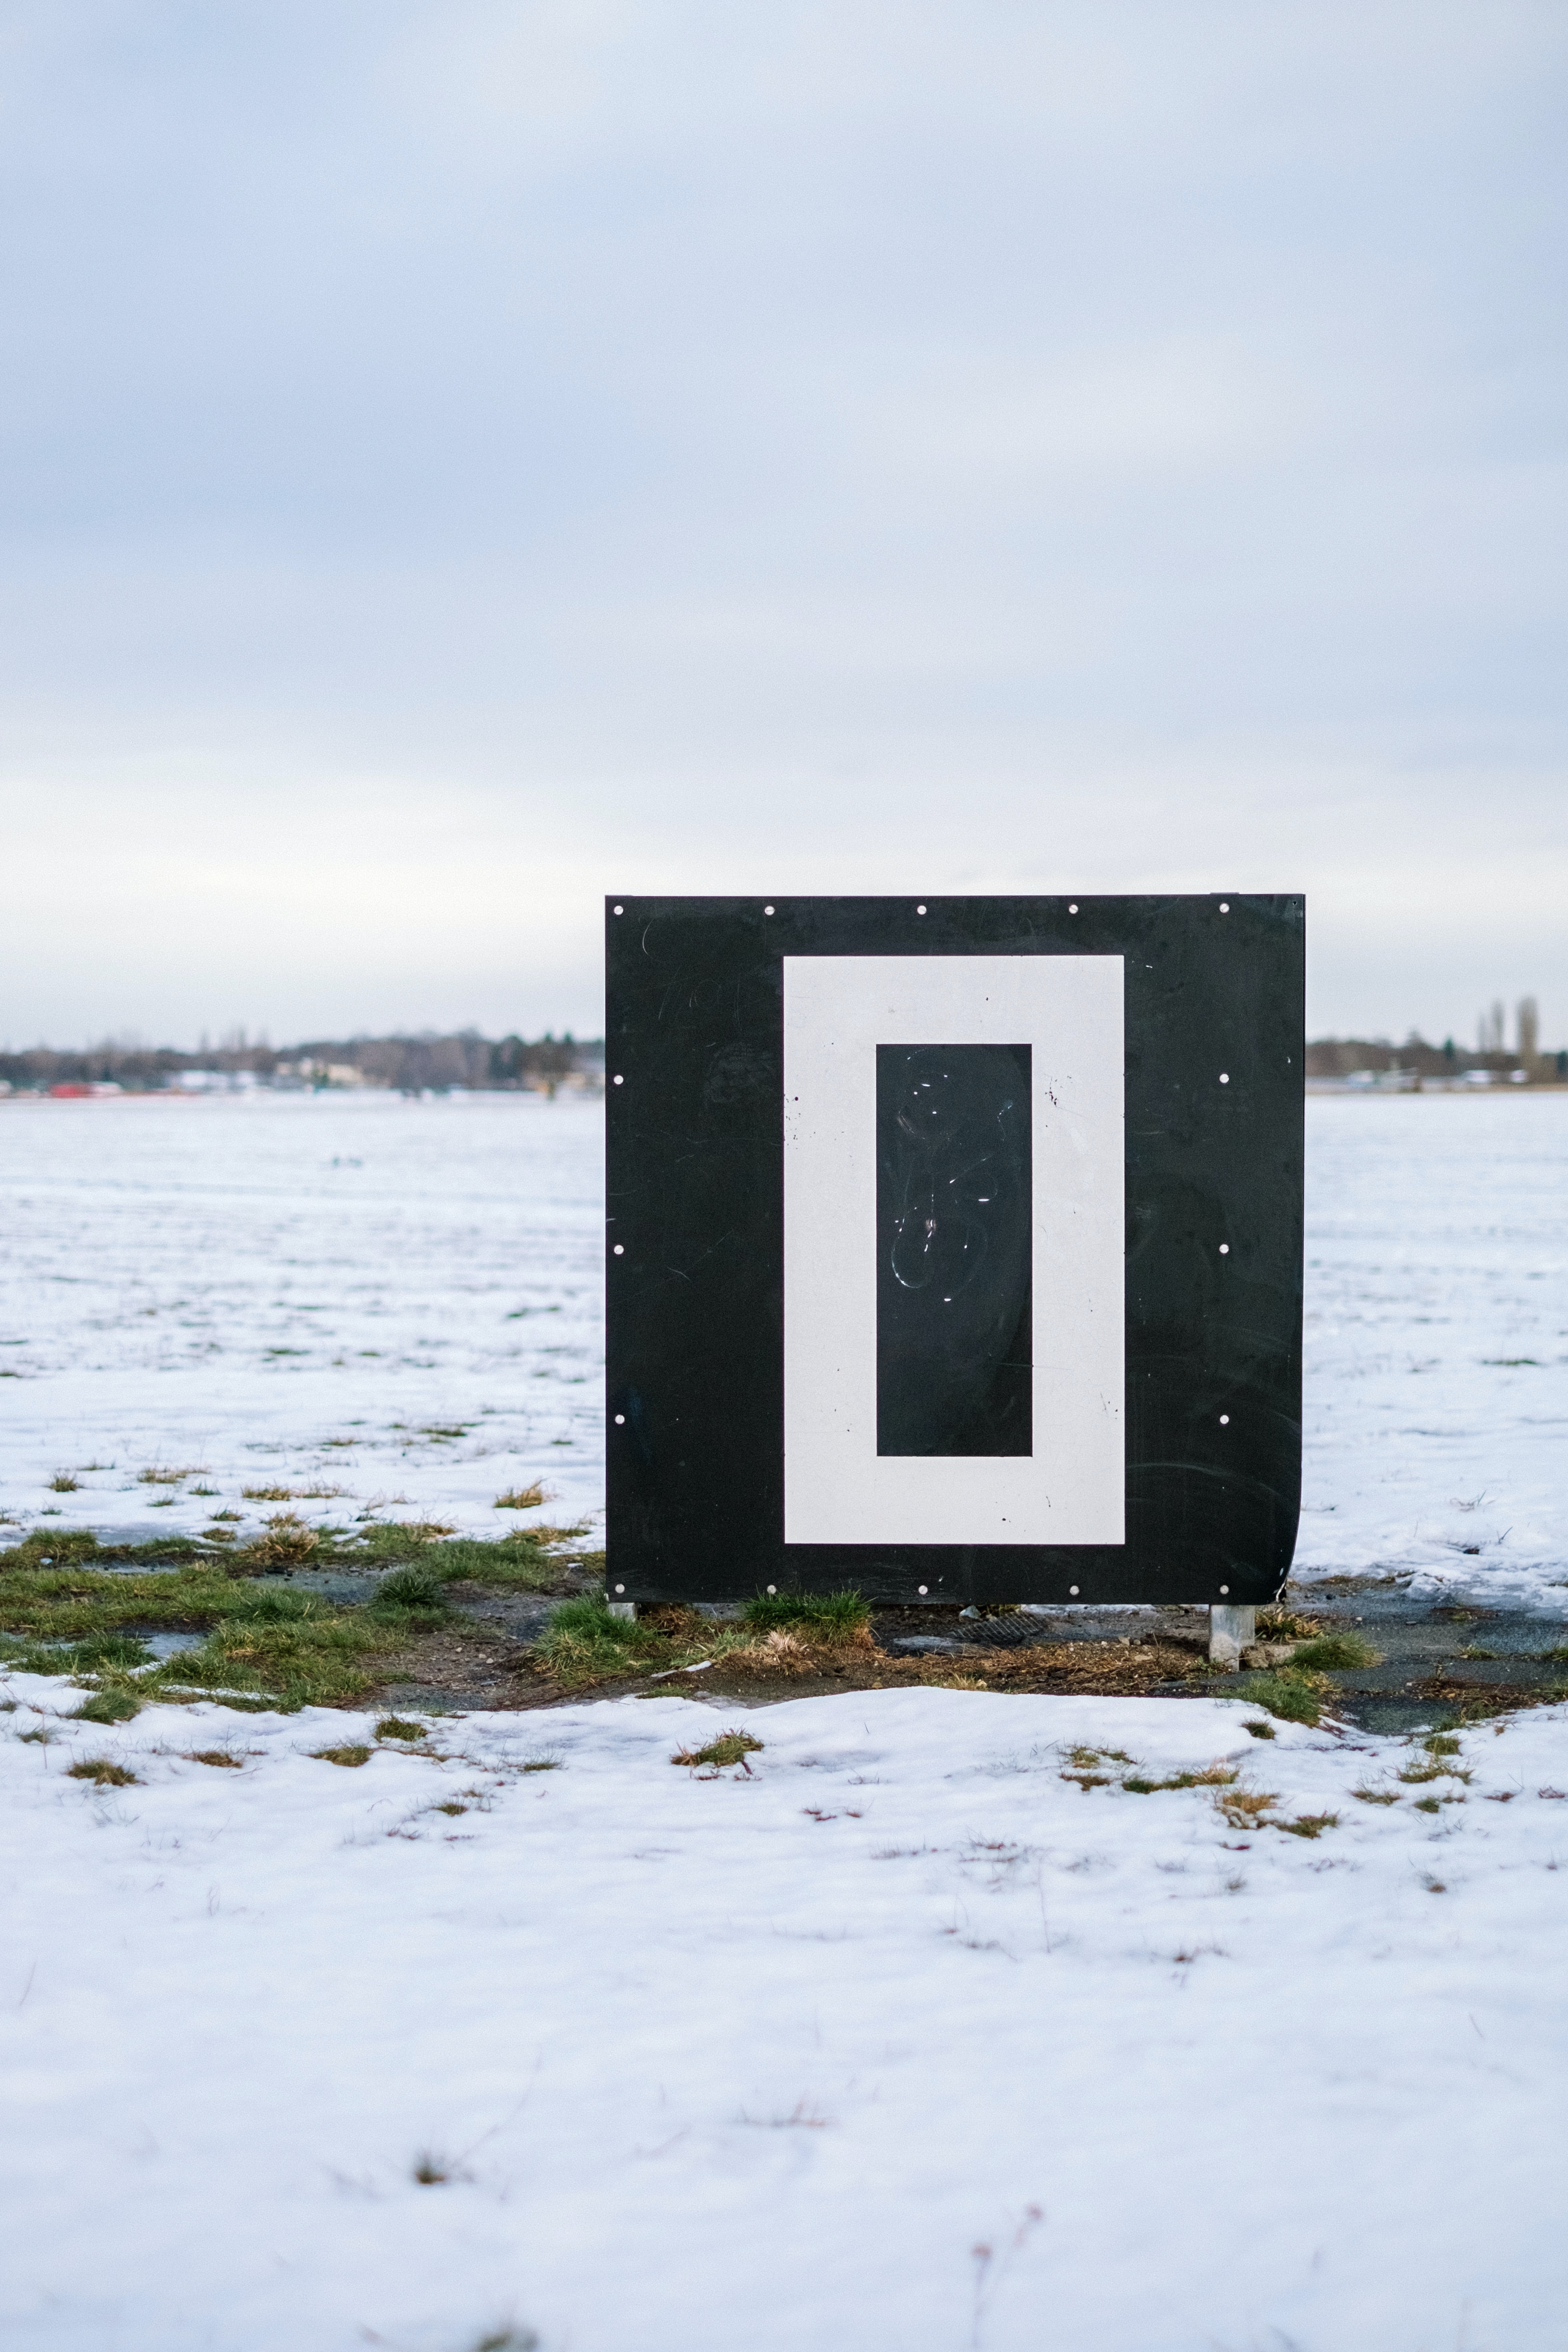 A small building surrounded by snow at the Germany airport runway, Berlin Tempelhofer Airport